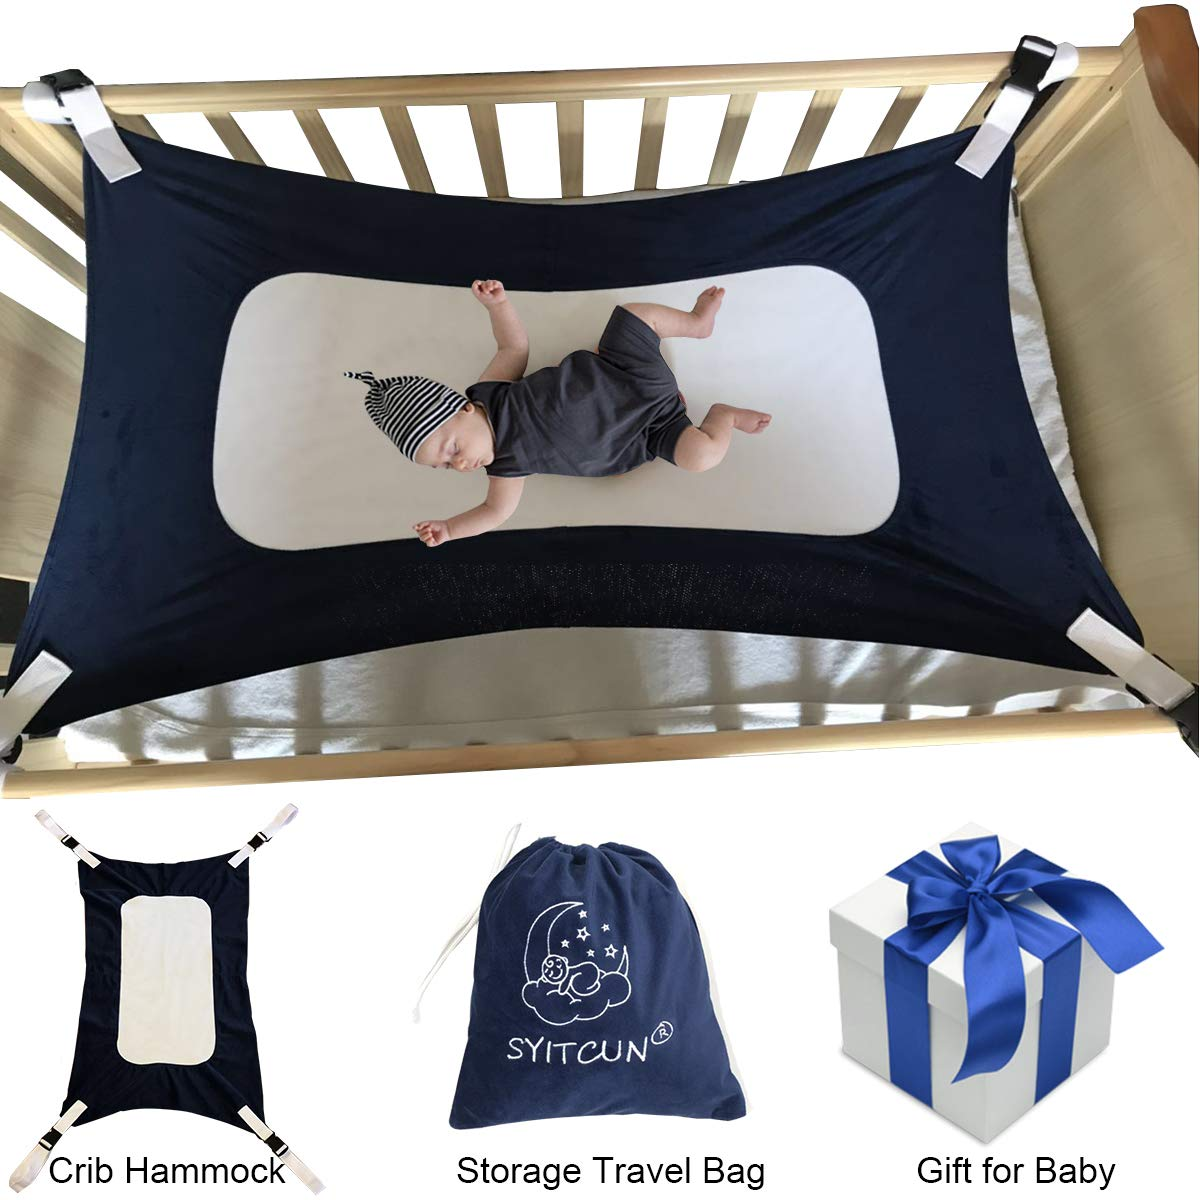 Baby Hammock for Crib Mimics Womb Newborn Bassinet Strong Material Upgraded Safety Measures Infant Nursery Travel Bed Reduce Environmental Risk Associated with Early Infancy Baby Shower Gifts